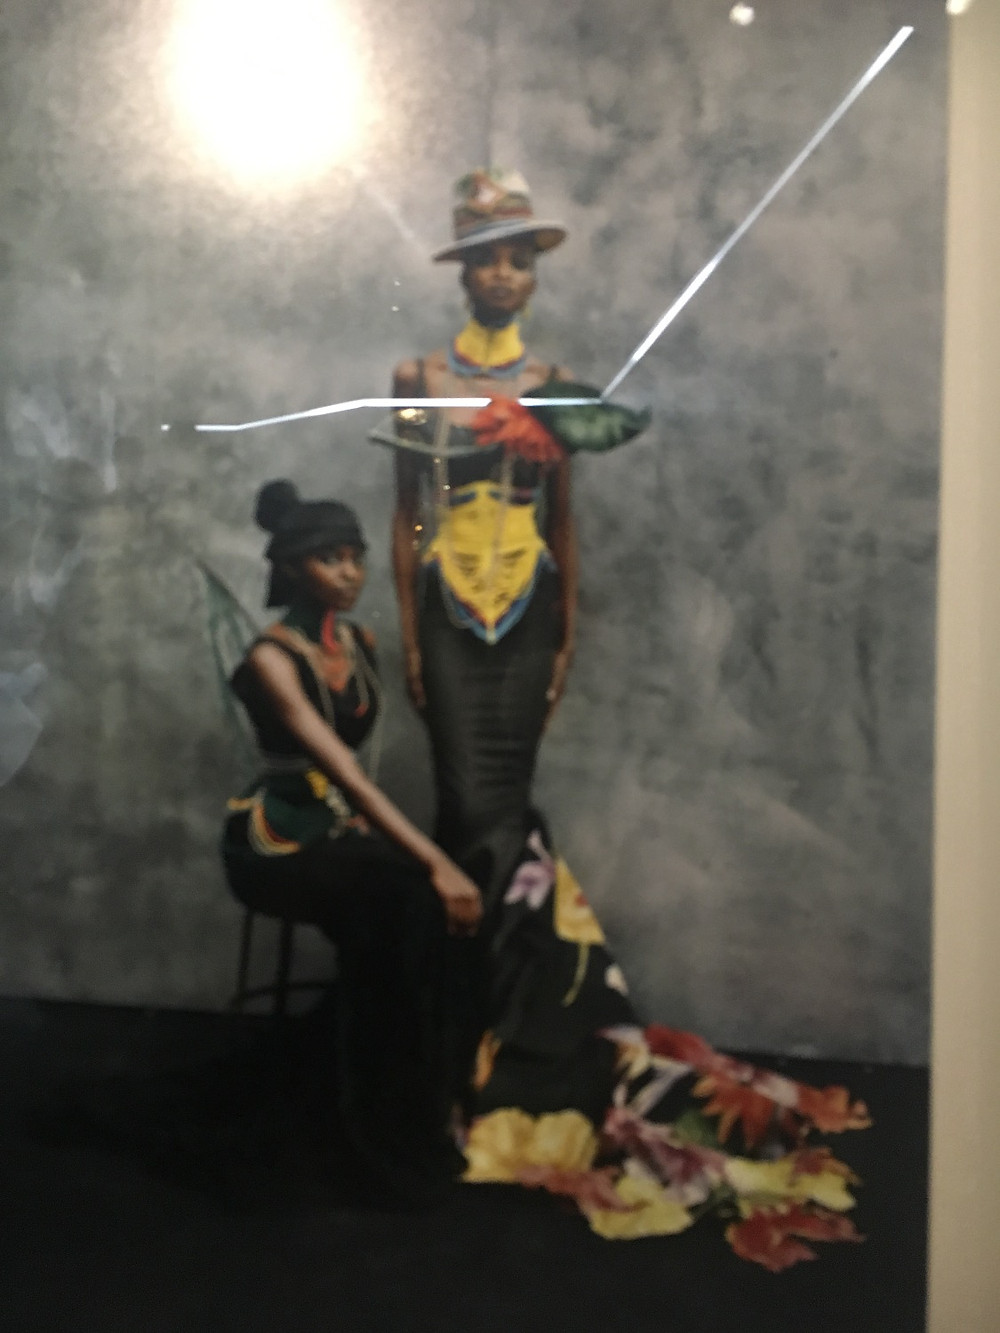 From the collection by John Galliano from his Massai collection. I only know these are the Kusudi and Kitu dresses from the book I purchased